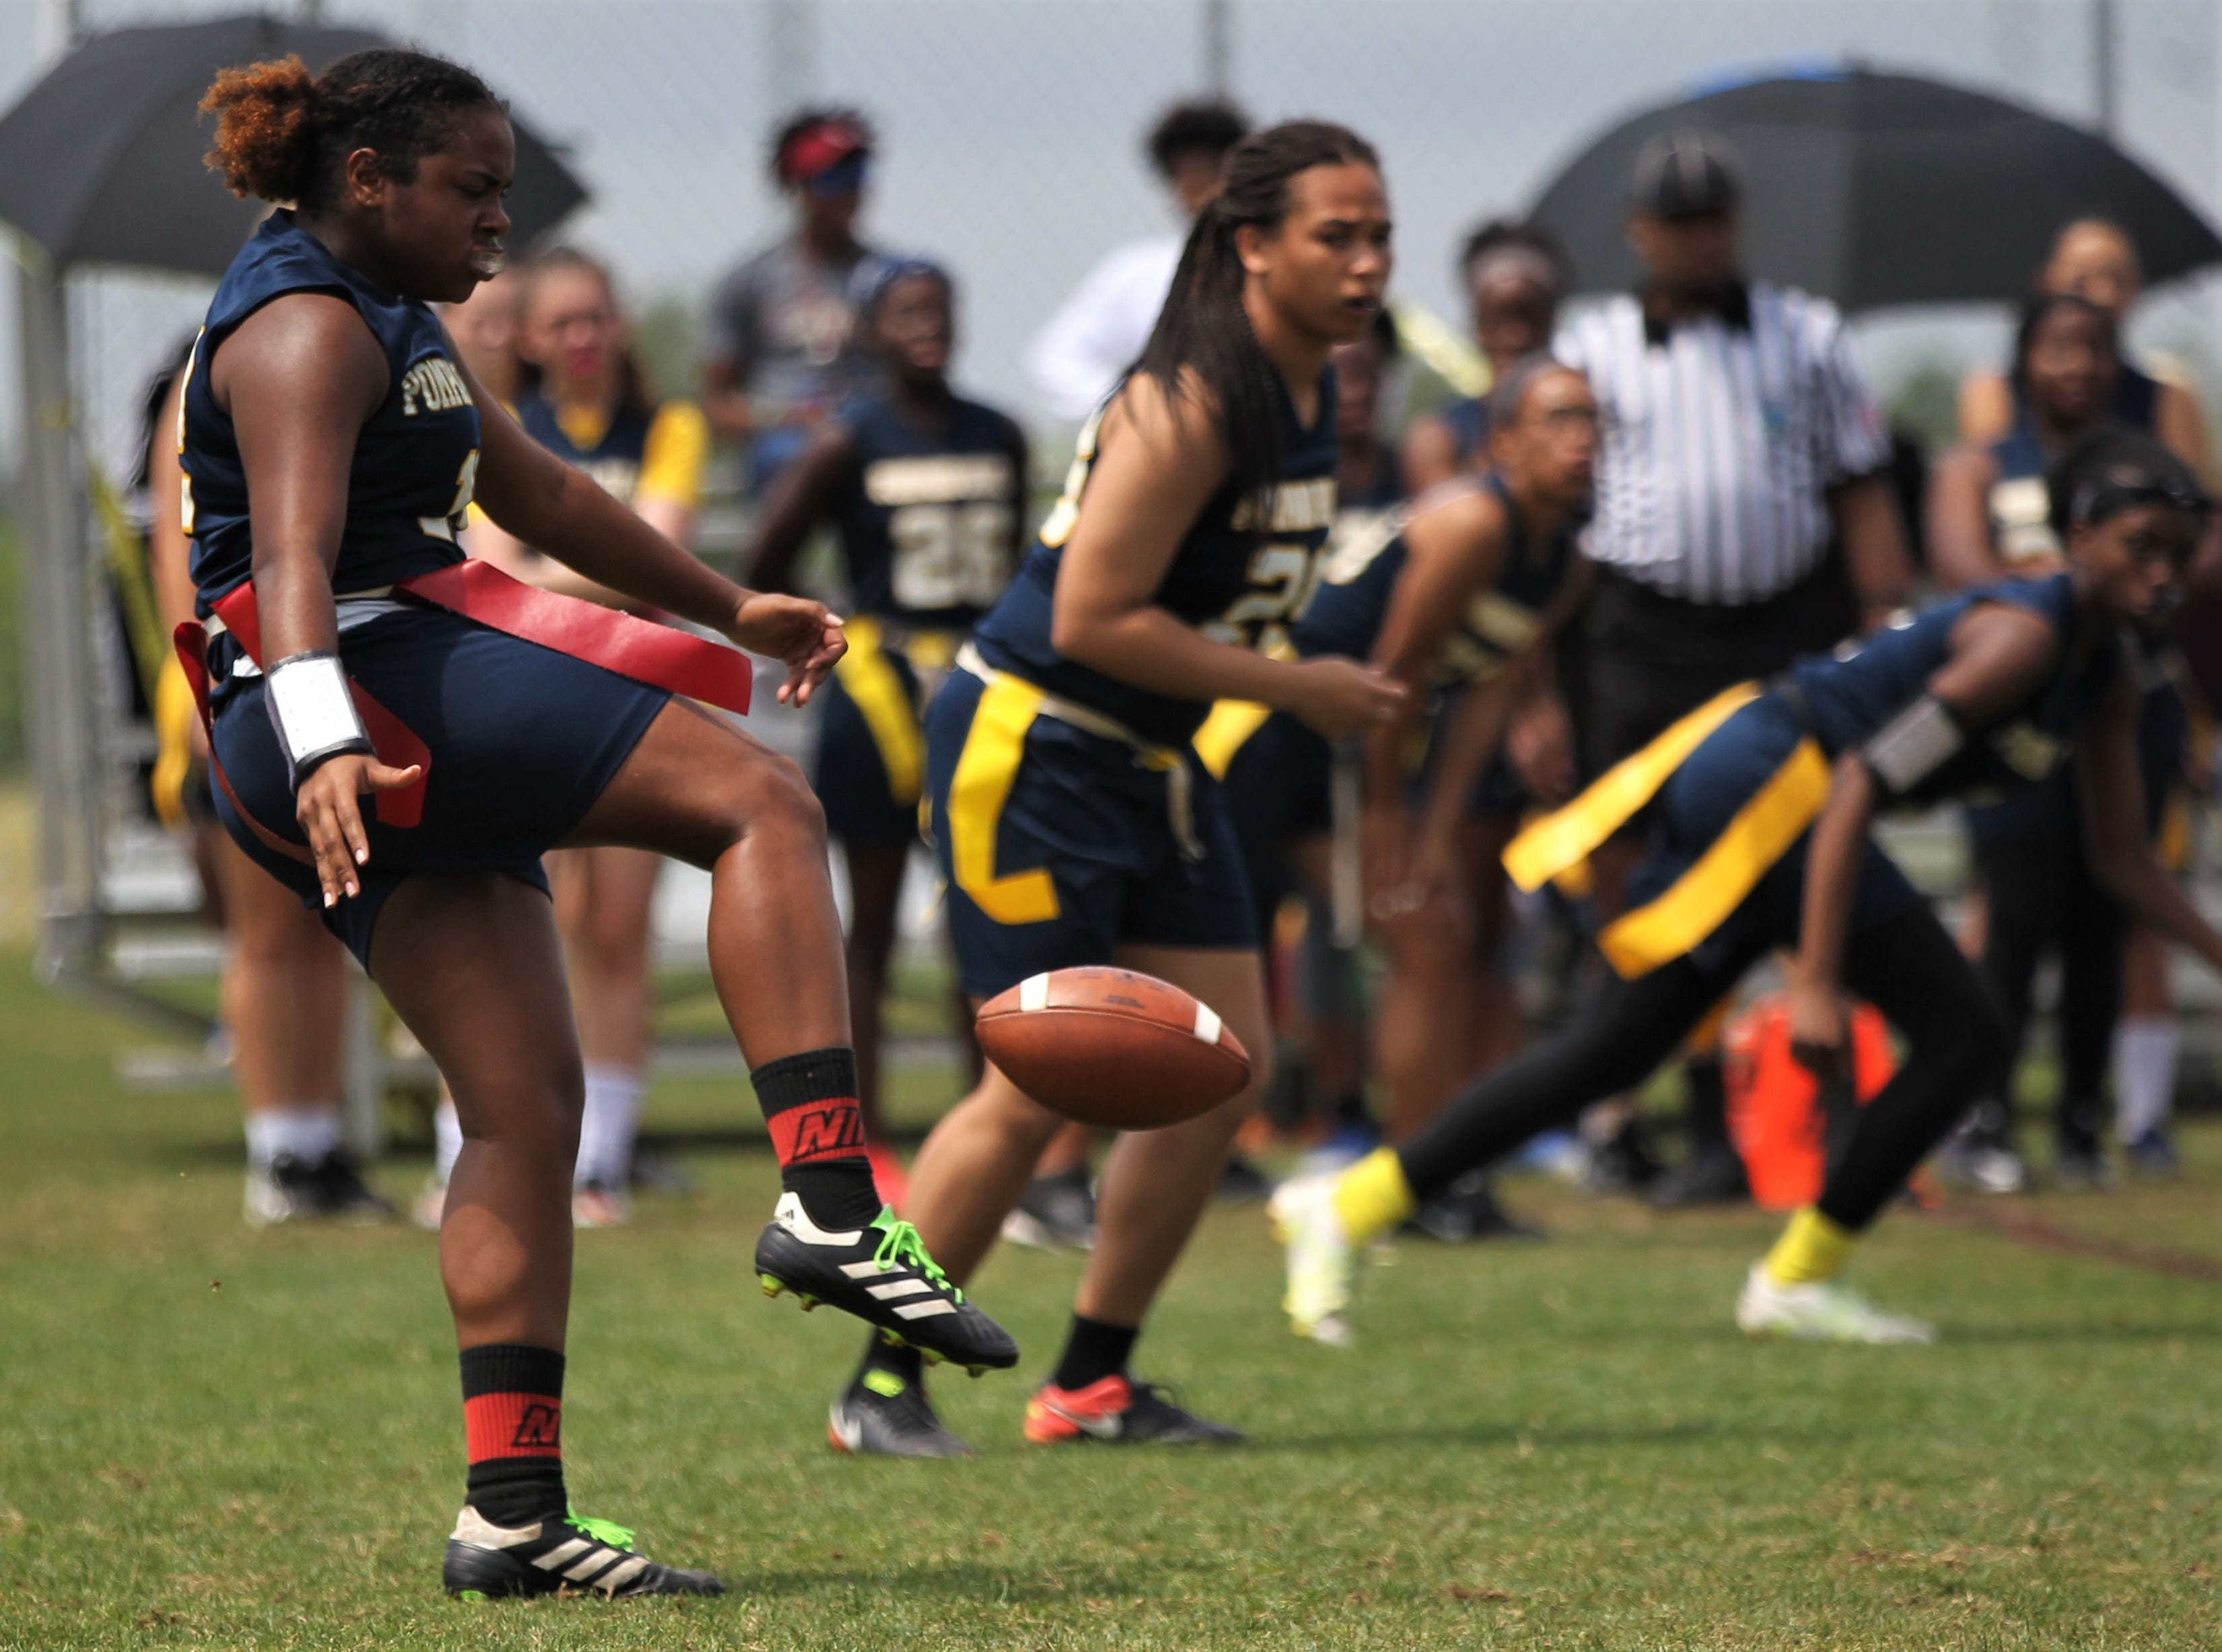 Pompano Beach plays in the 2019 Capital City Classic flag football tournament at the FSU Rec SportsPlex on April 6, 2019.